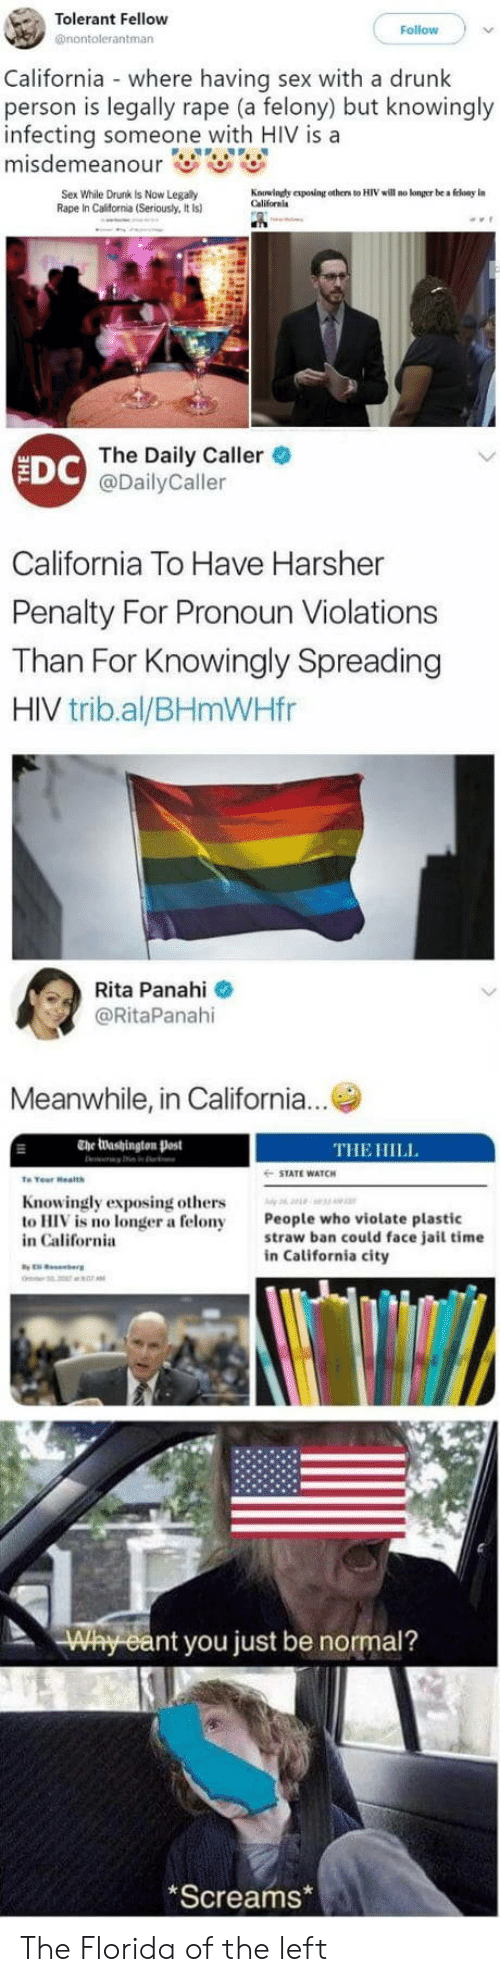 violate: Tolerant Fellow  @nontolerantman  Follow  California where having sex with a drunk  person is legally rape (a felony) but knowingly  infecting someone with HIV is a  Sex While Drunk Is Now Legally  Rape In California (Seriously, It Is)  Kauuindy eposing others to HIV will no konger be a floay in  Californla  EDC  The Daily Caller  @DailyCaller  California To Have Harsher  Penalty For Pronoun Violations  Than For Knowingly Spreading  HIV trib.al/BHmWHfr  Rita Panahi  @RitaPanahi  Meanwhile, in California...  The Washington Post  THE HILL  STATE WATCH  Knowingly exposing others  to HIV is no longer a felony  in California  People who violate plastic  straw ban could face jail time  in California city  nt you just be normal?  Screams The Florida of the left